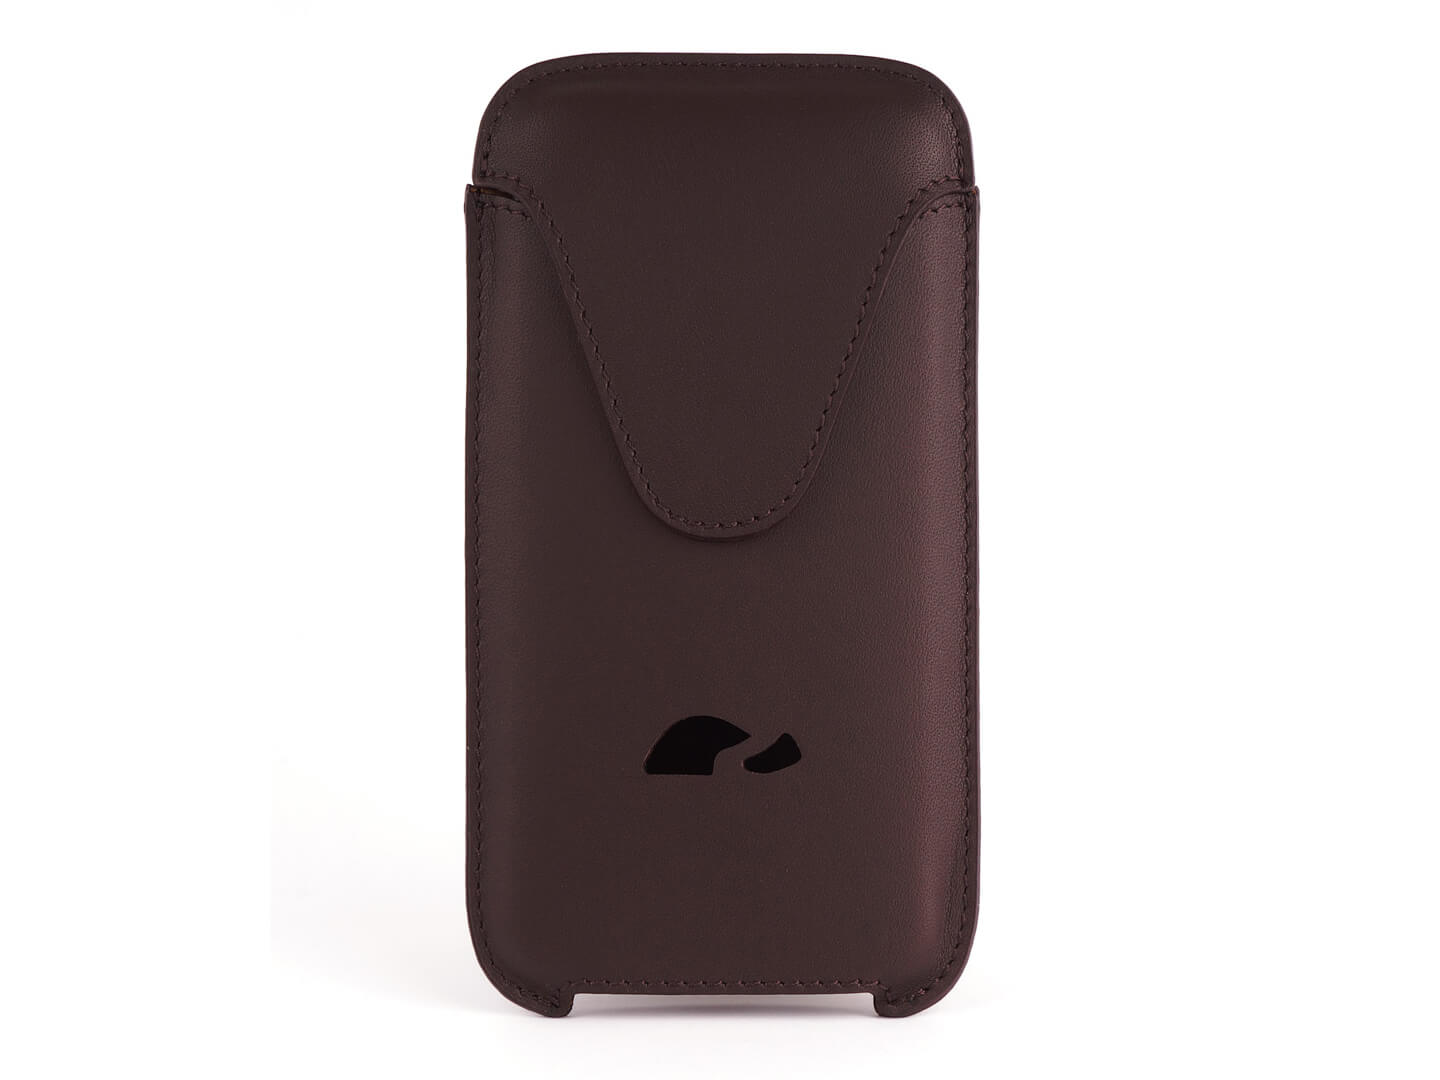 best sneakers 76875 32397 LEATHER POUCH iPHONE 6 / 6 PLUS / 7 / 7 PLUS / 8 / 8 PLUS / XS Max - BROWN